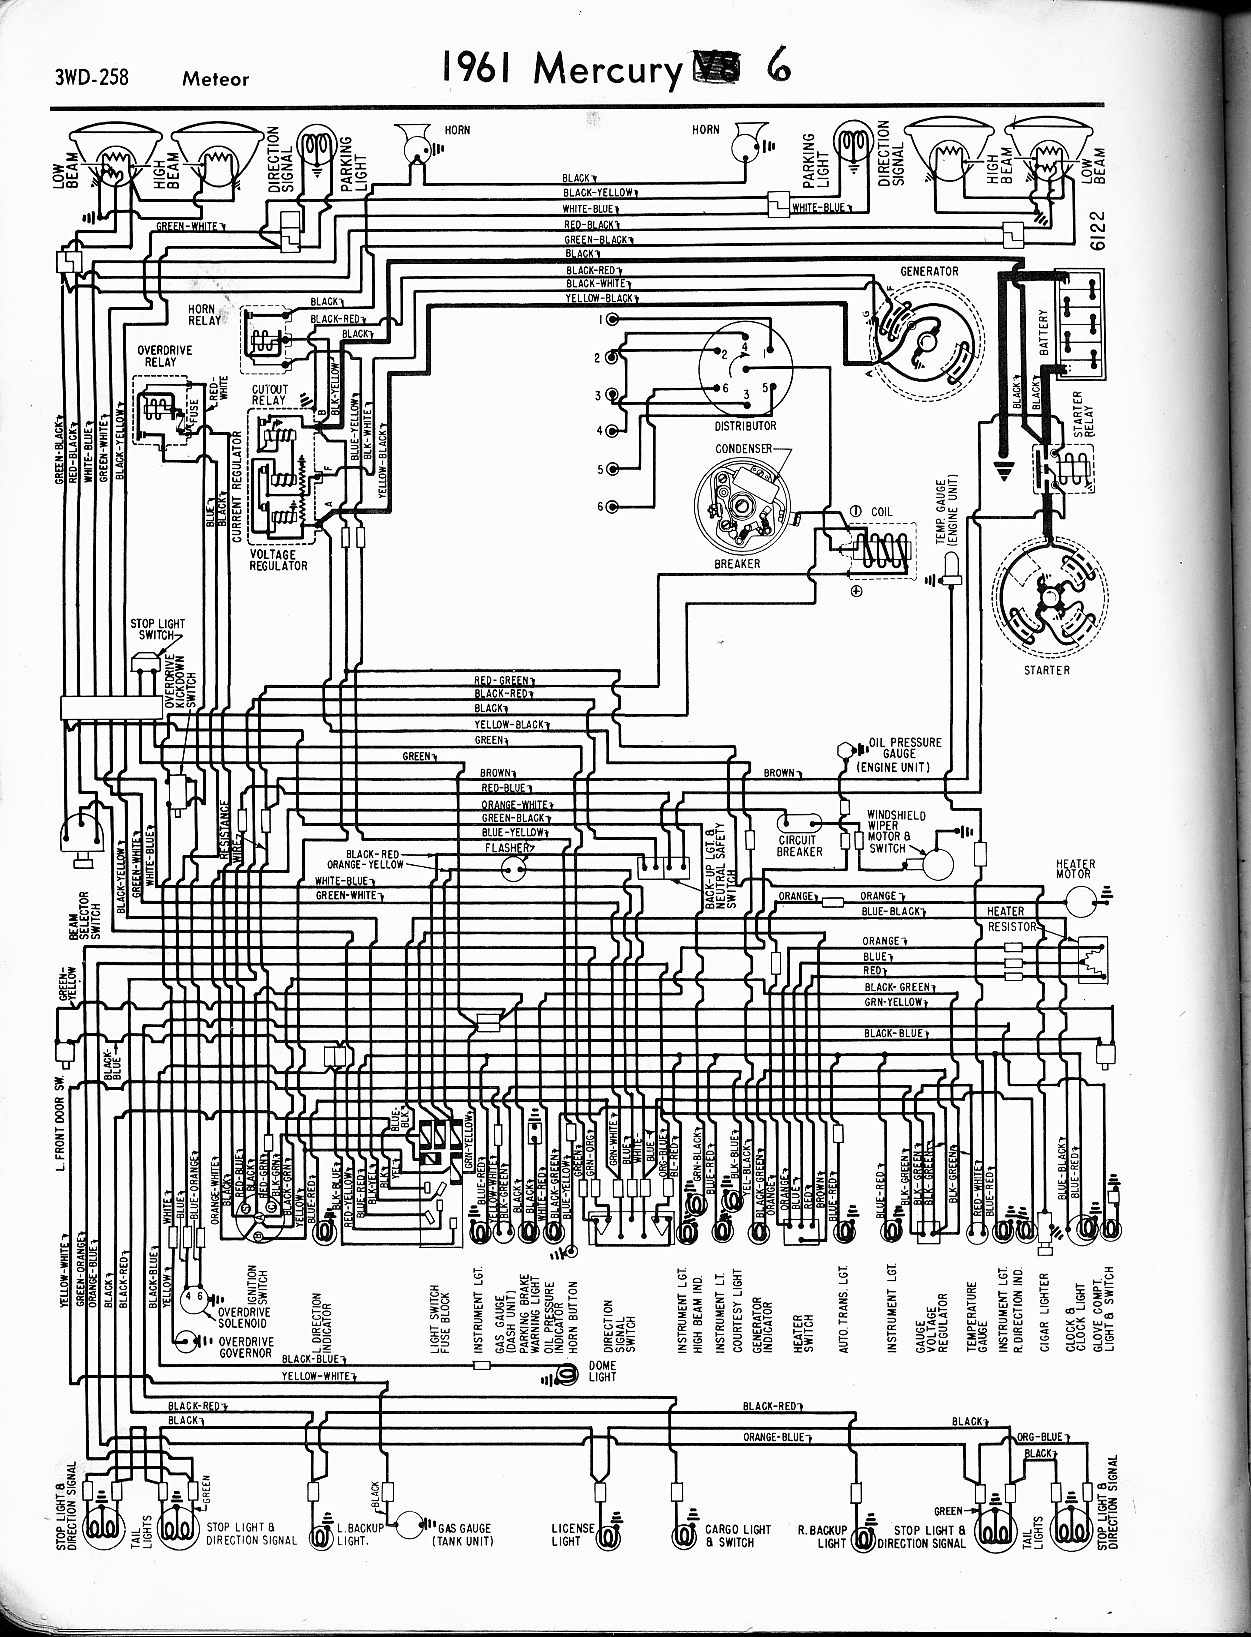 1955 mercury monterey wiring harness 1955 free engine image for user manual